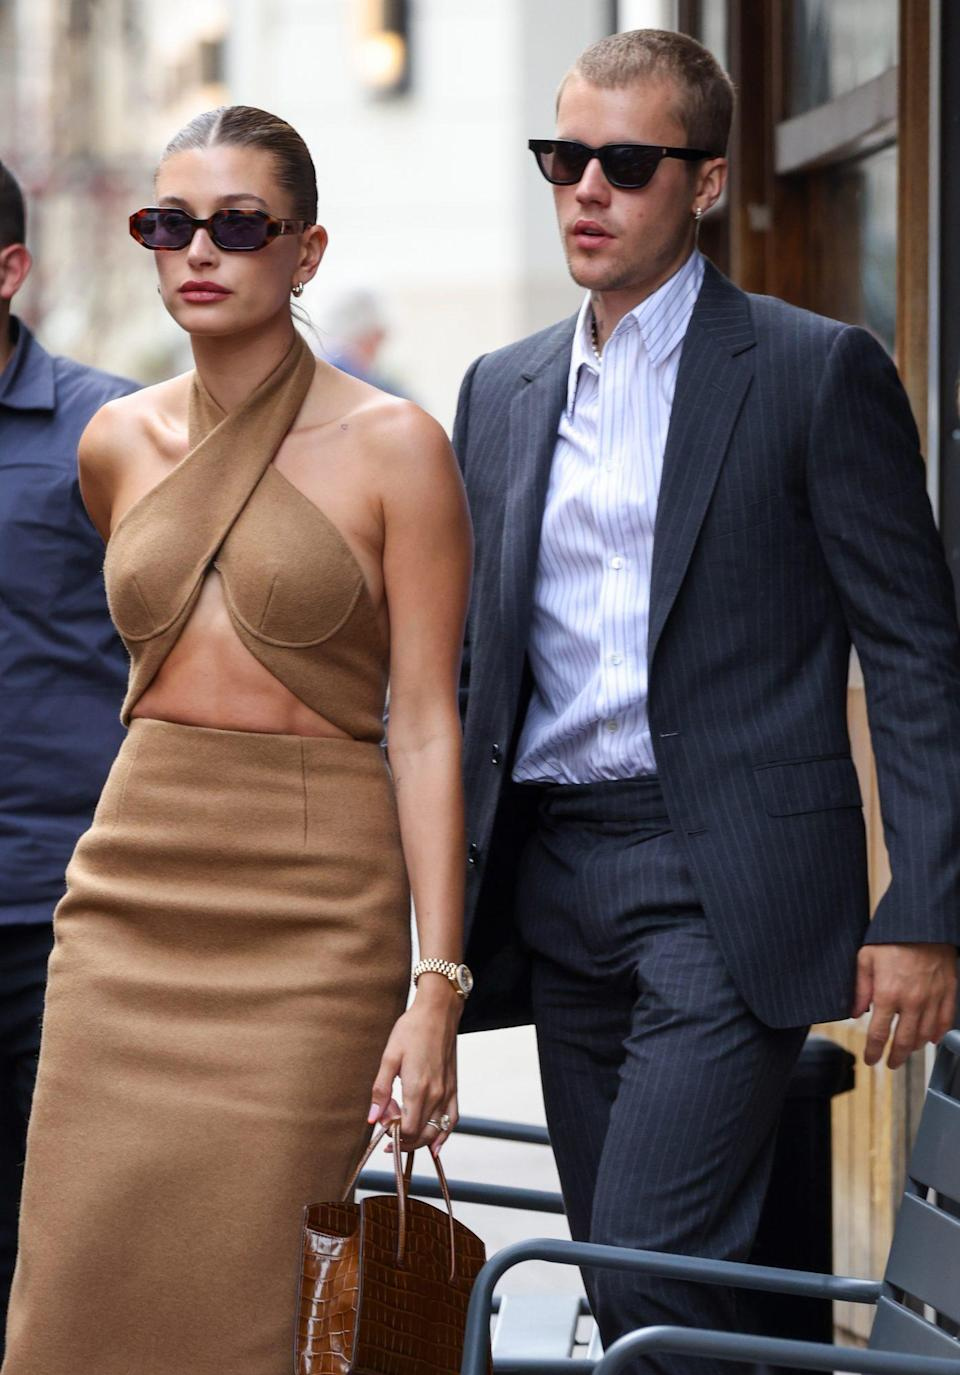 <p>Hailey and Justin Bieber look chic in formal looks as they leave a restaurant in Paris on June 21.</p>